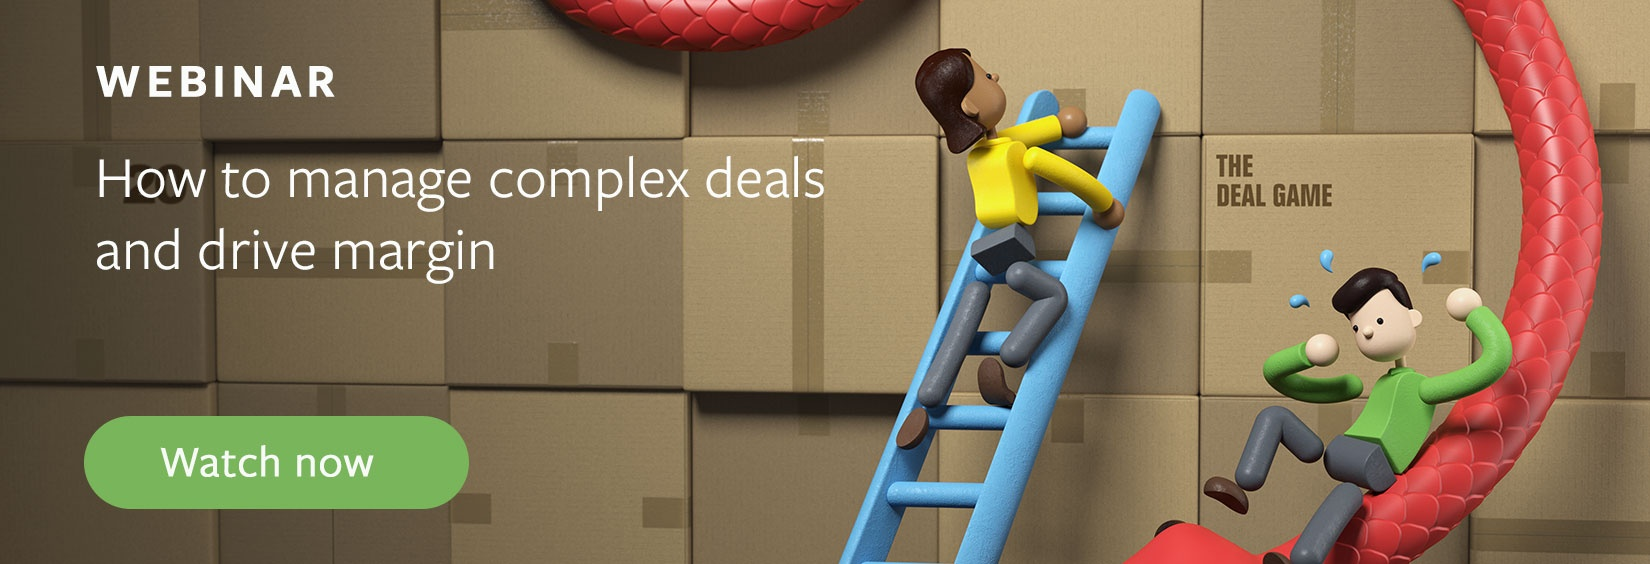 Vendor Rebates: how to manage complex deals